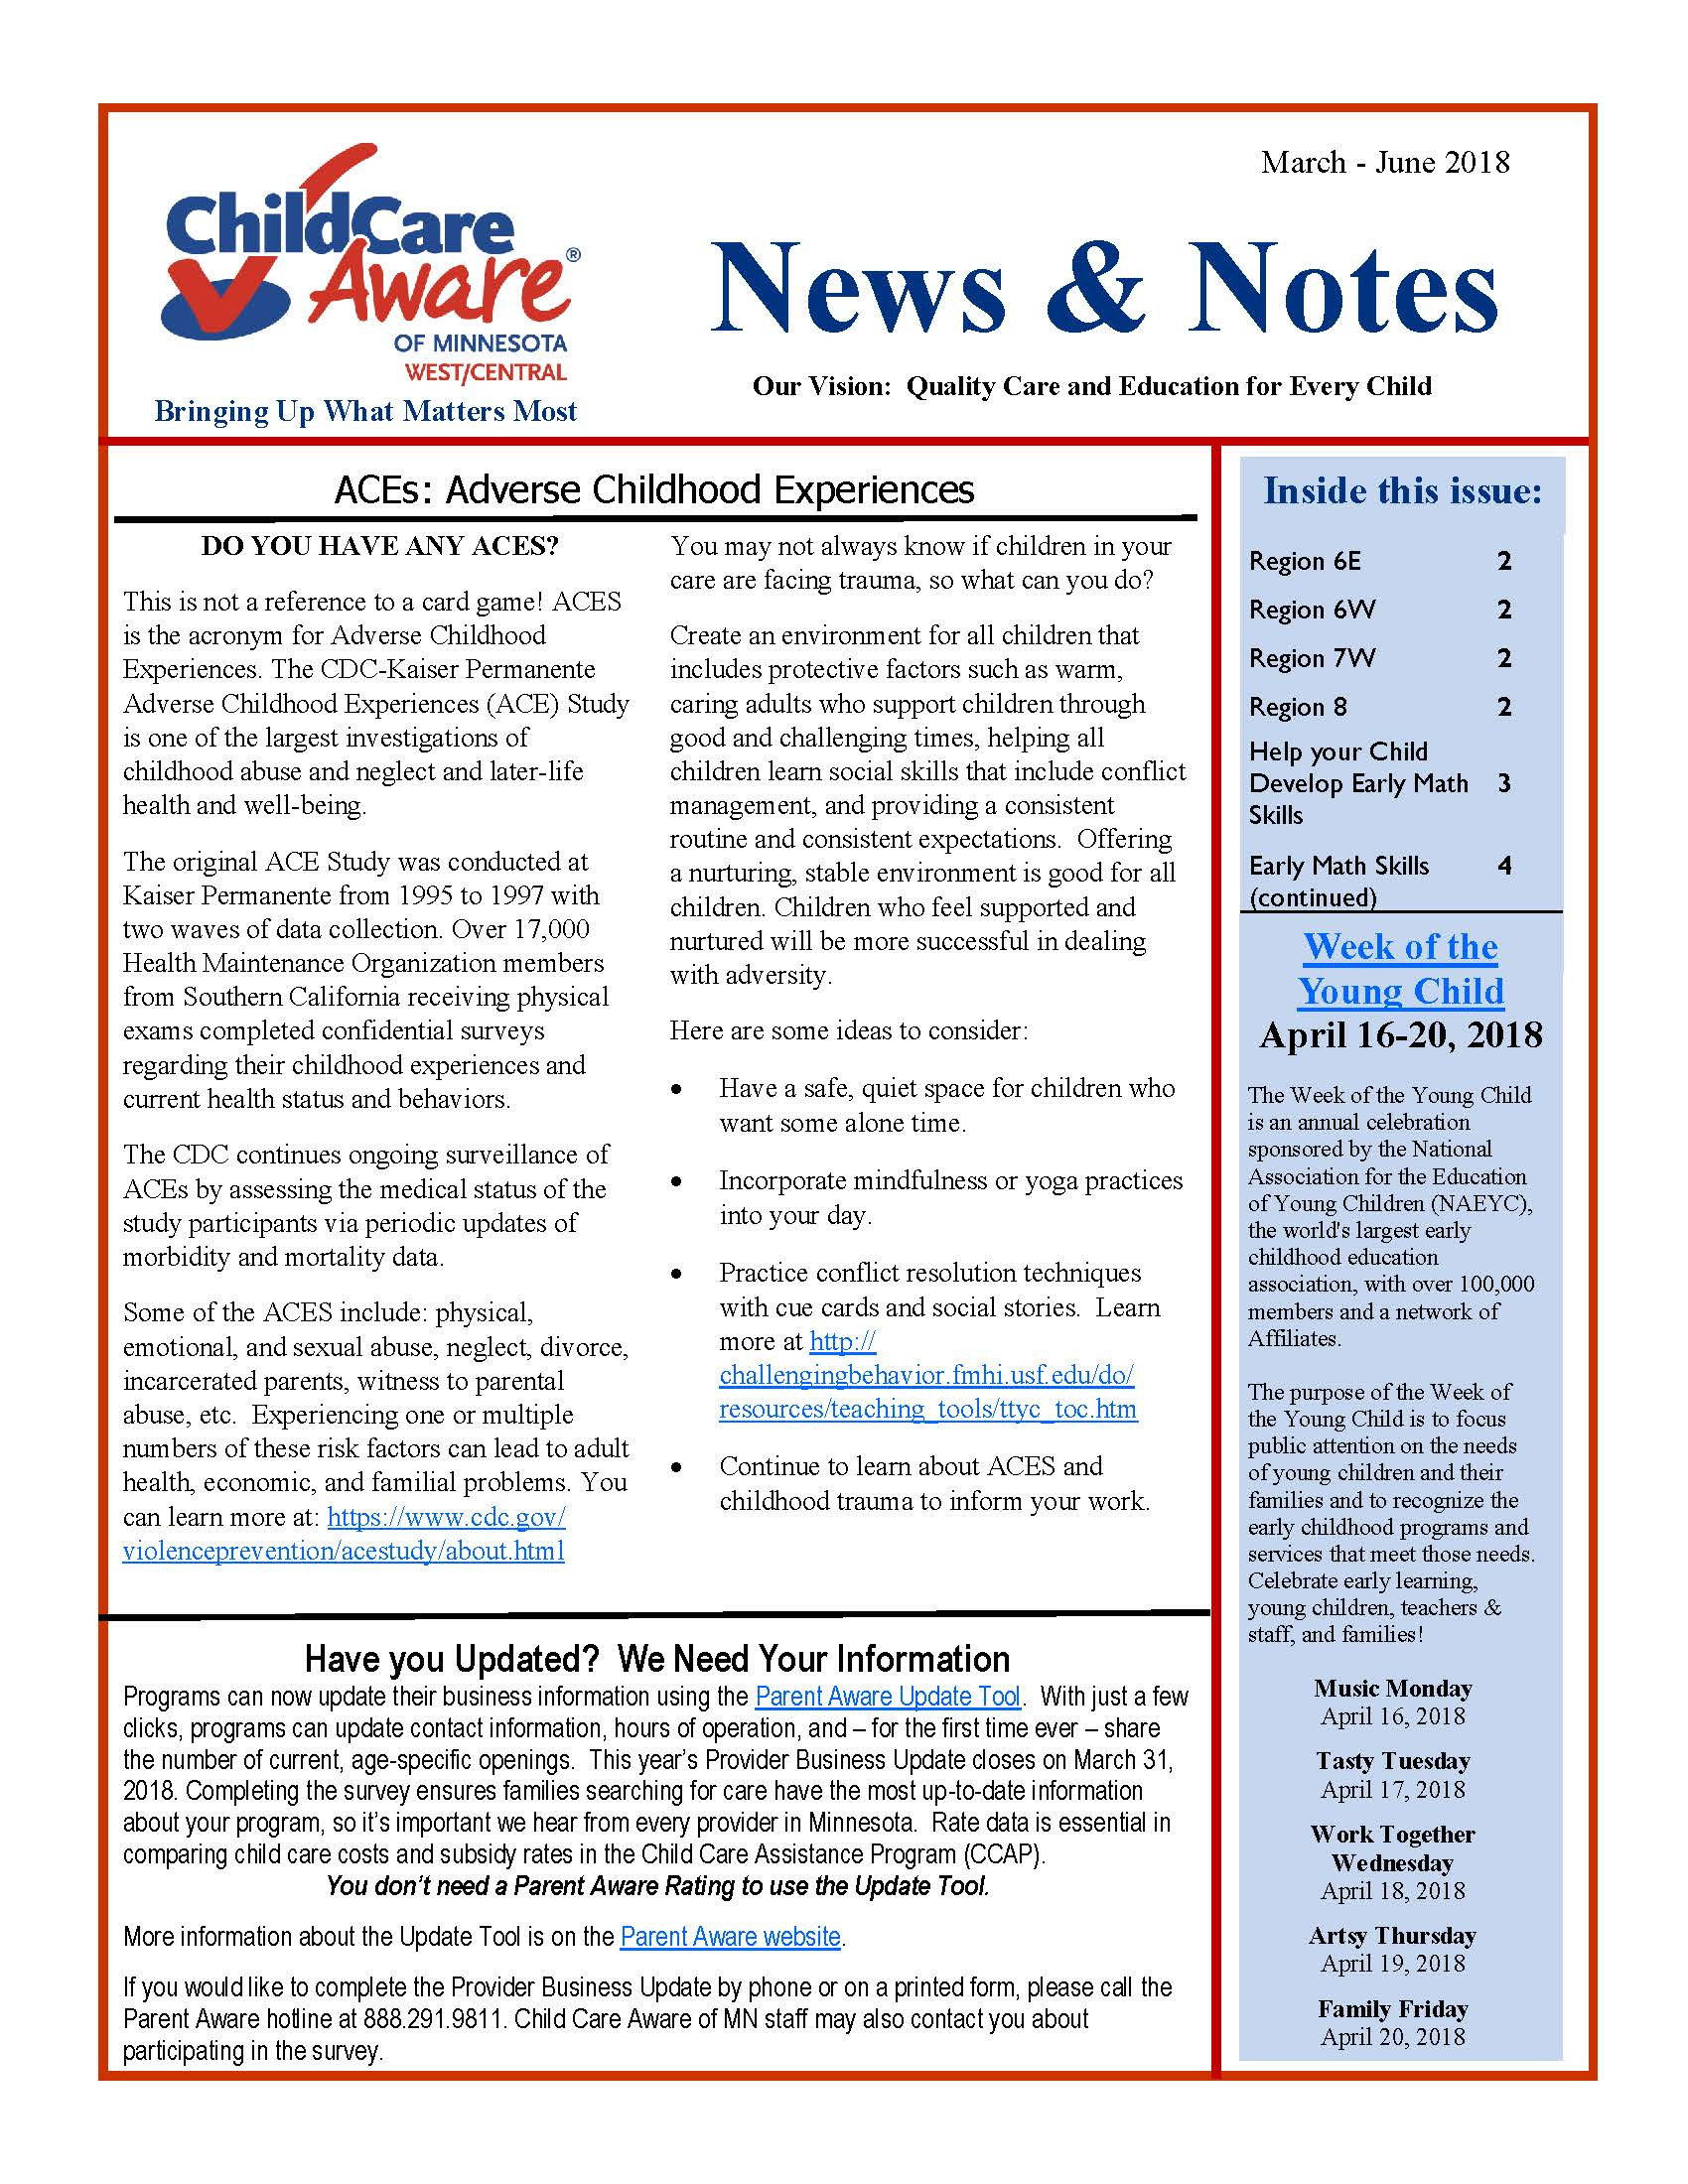 newsletter March2018_Page_1.jpg